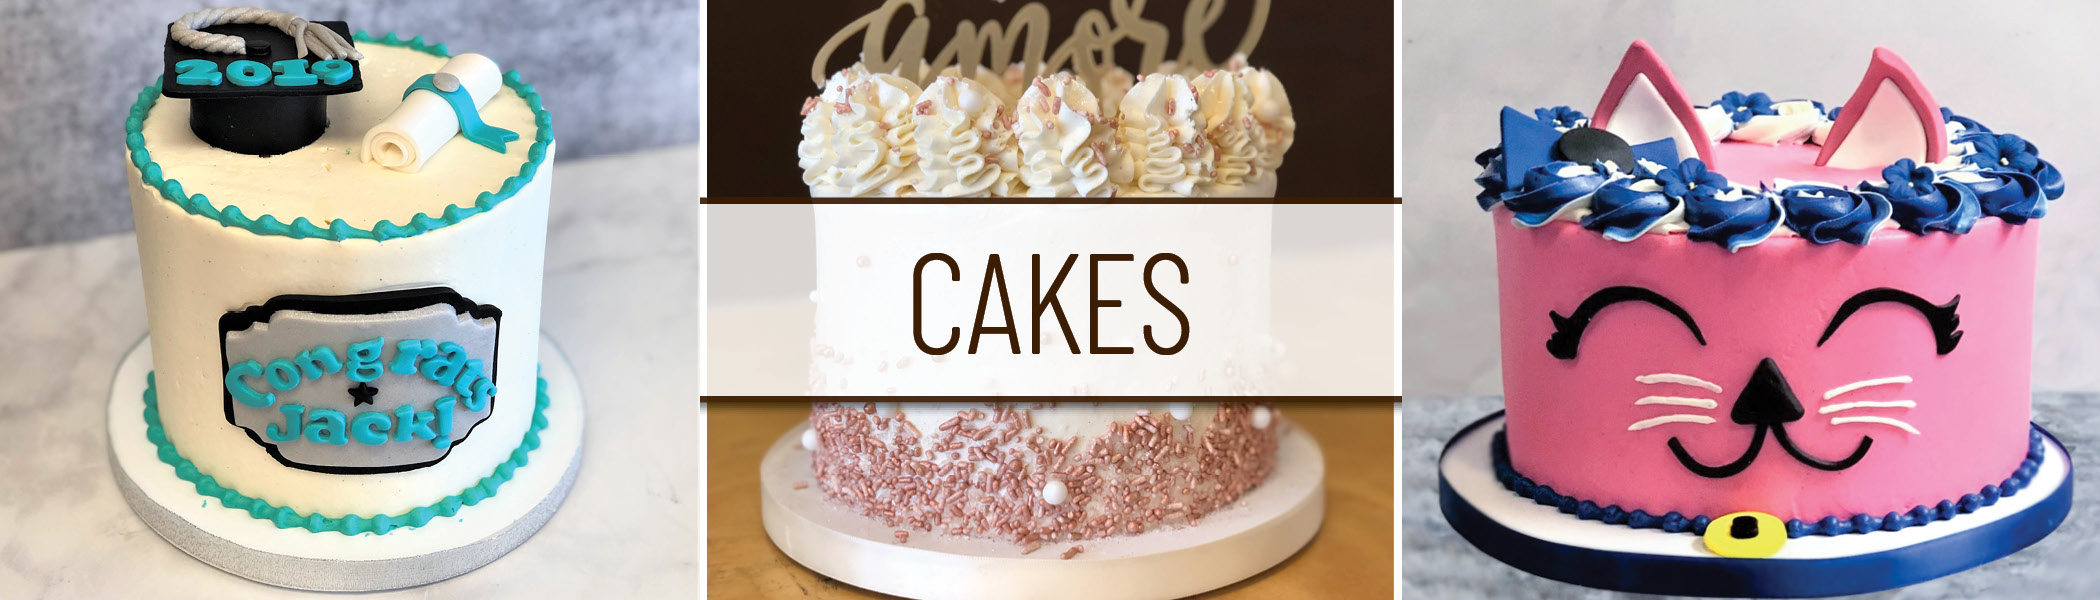 The Prices Below Reflect Base For Our Cakes And Include Basic Decoration From Classic Cake Designs Will Increase With Customization